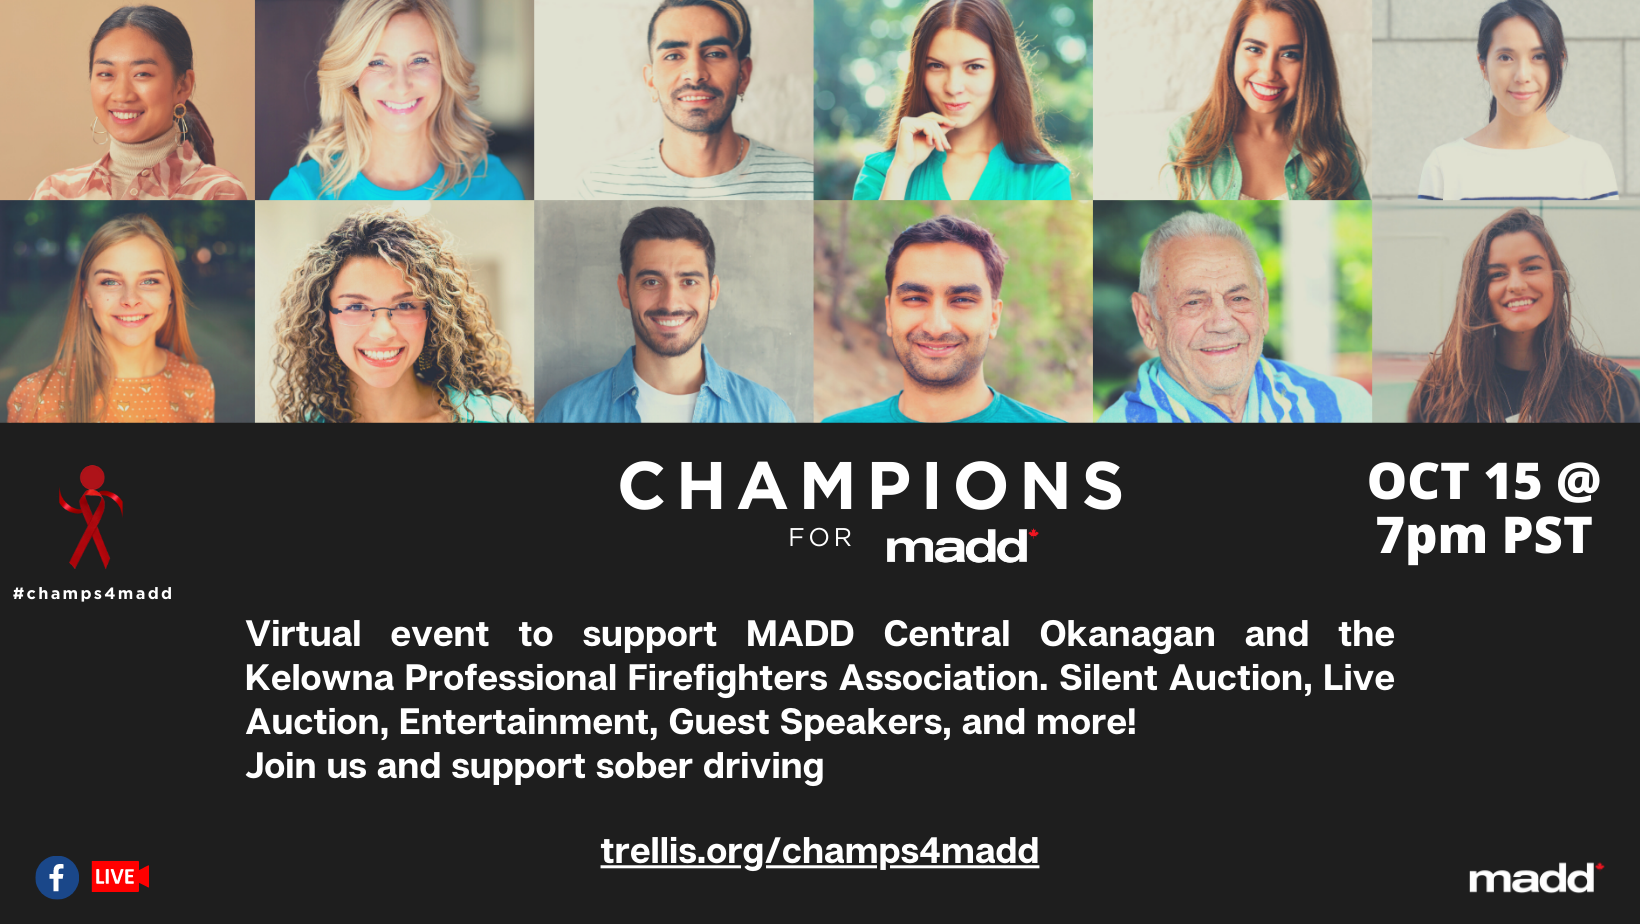 Champions for MADD Fundraiser- Oct 15th at 7PM. Trellis.org/champs4madd